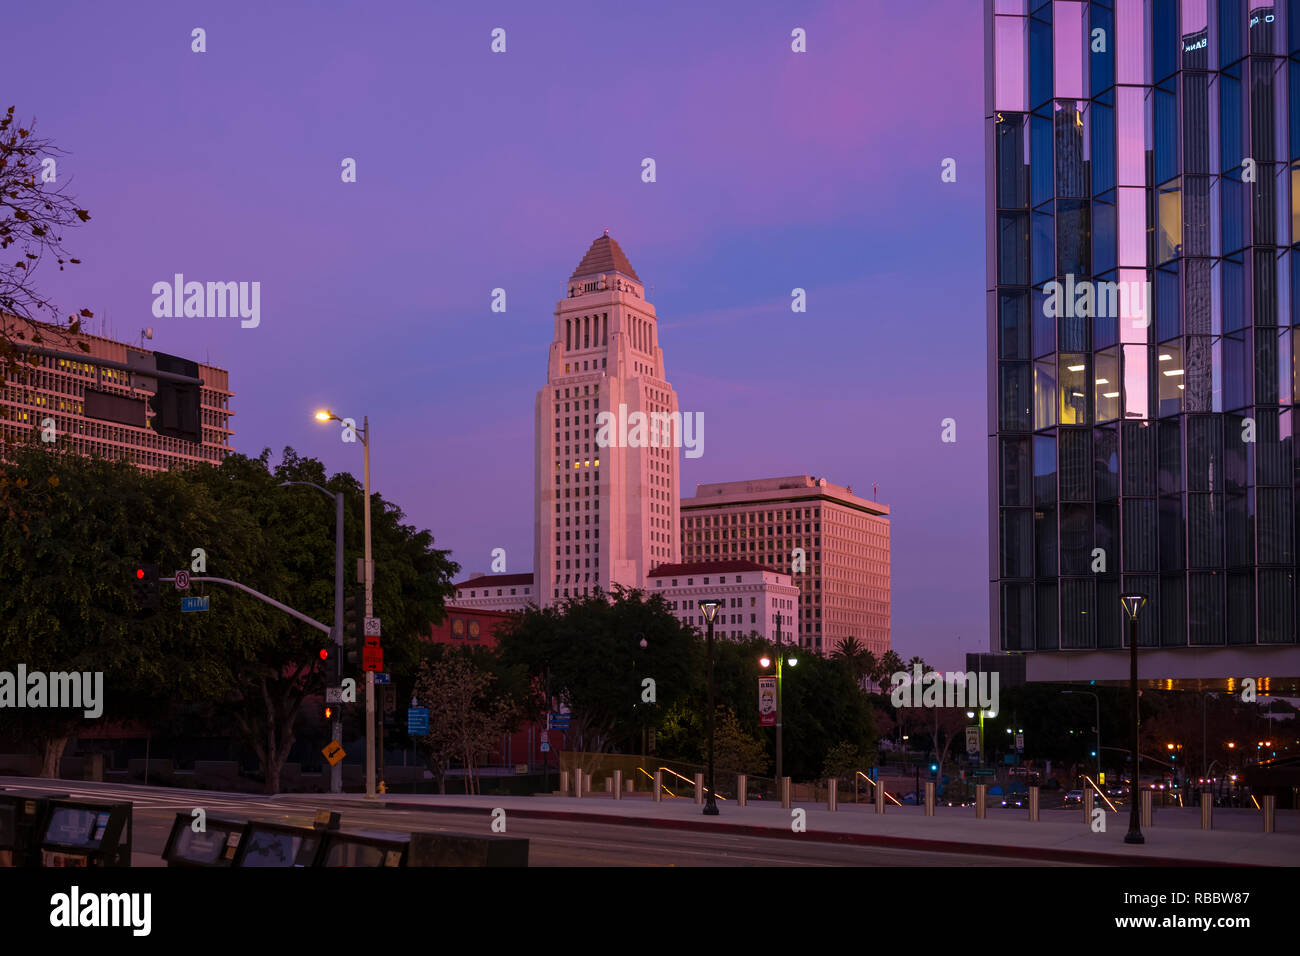 Los Angeles City Hall at downtown Los Angeles, California. - Stock Image